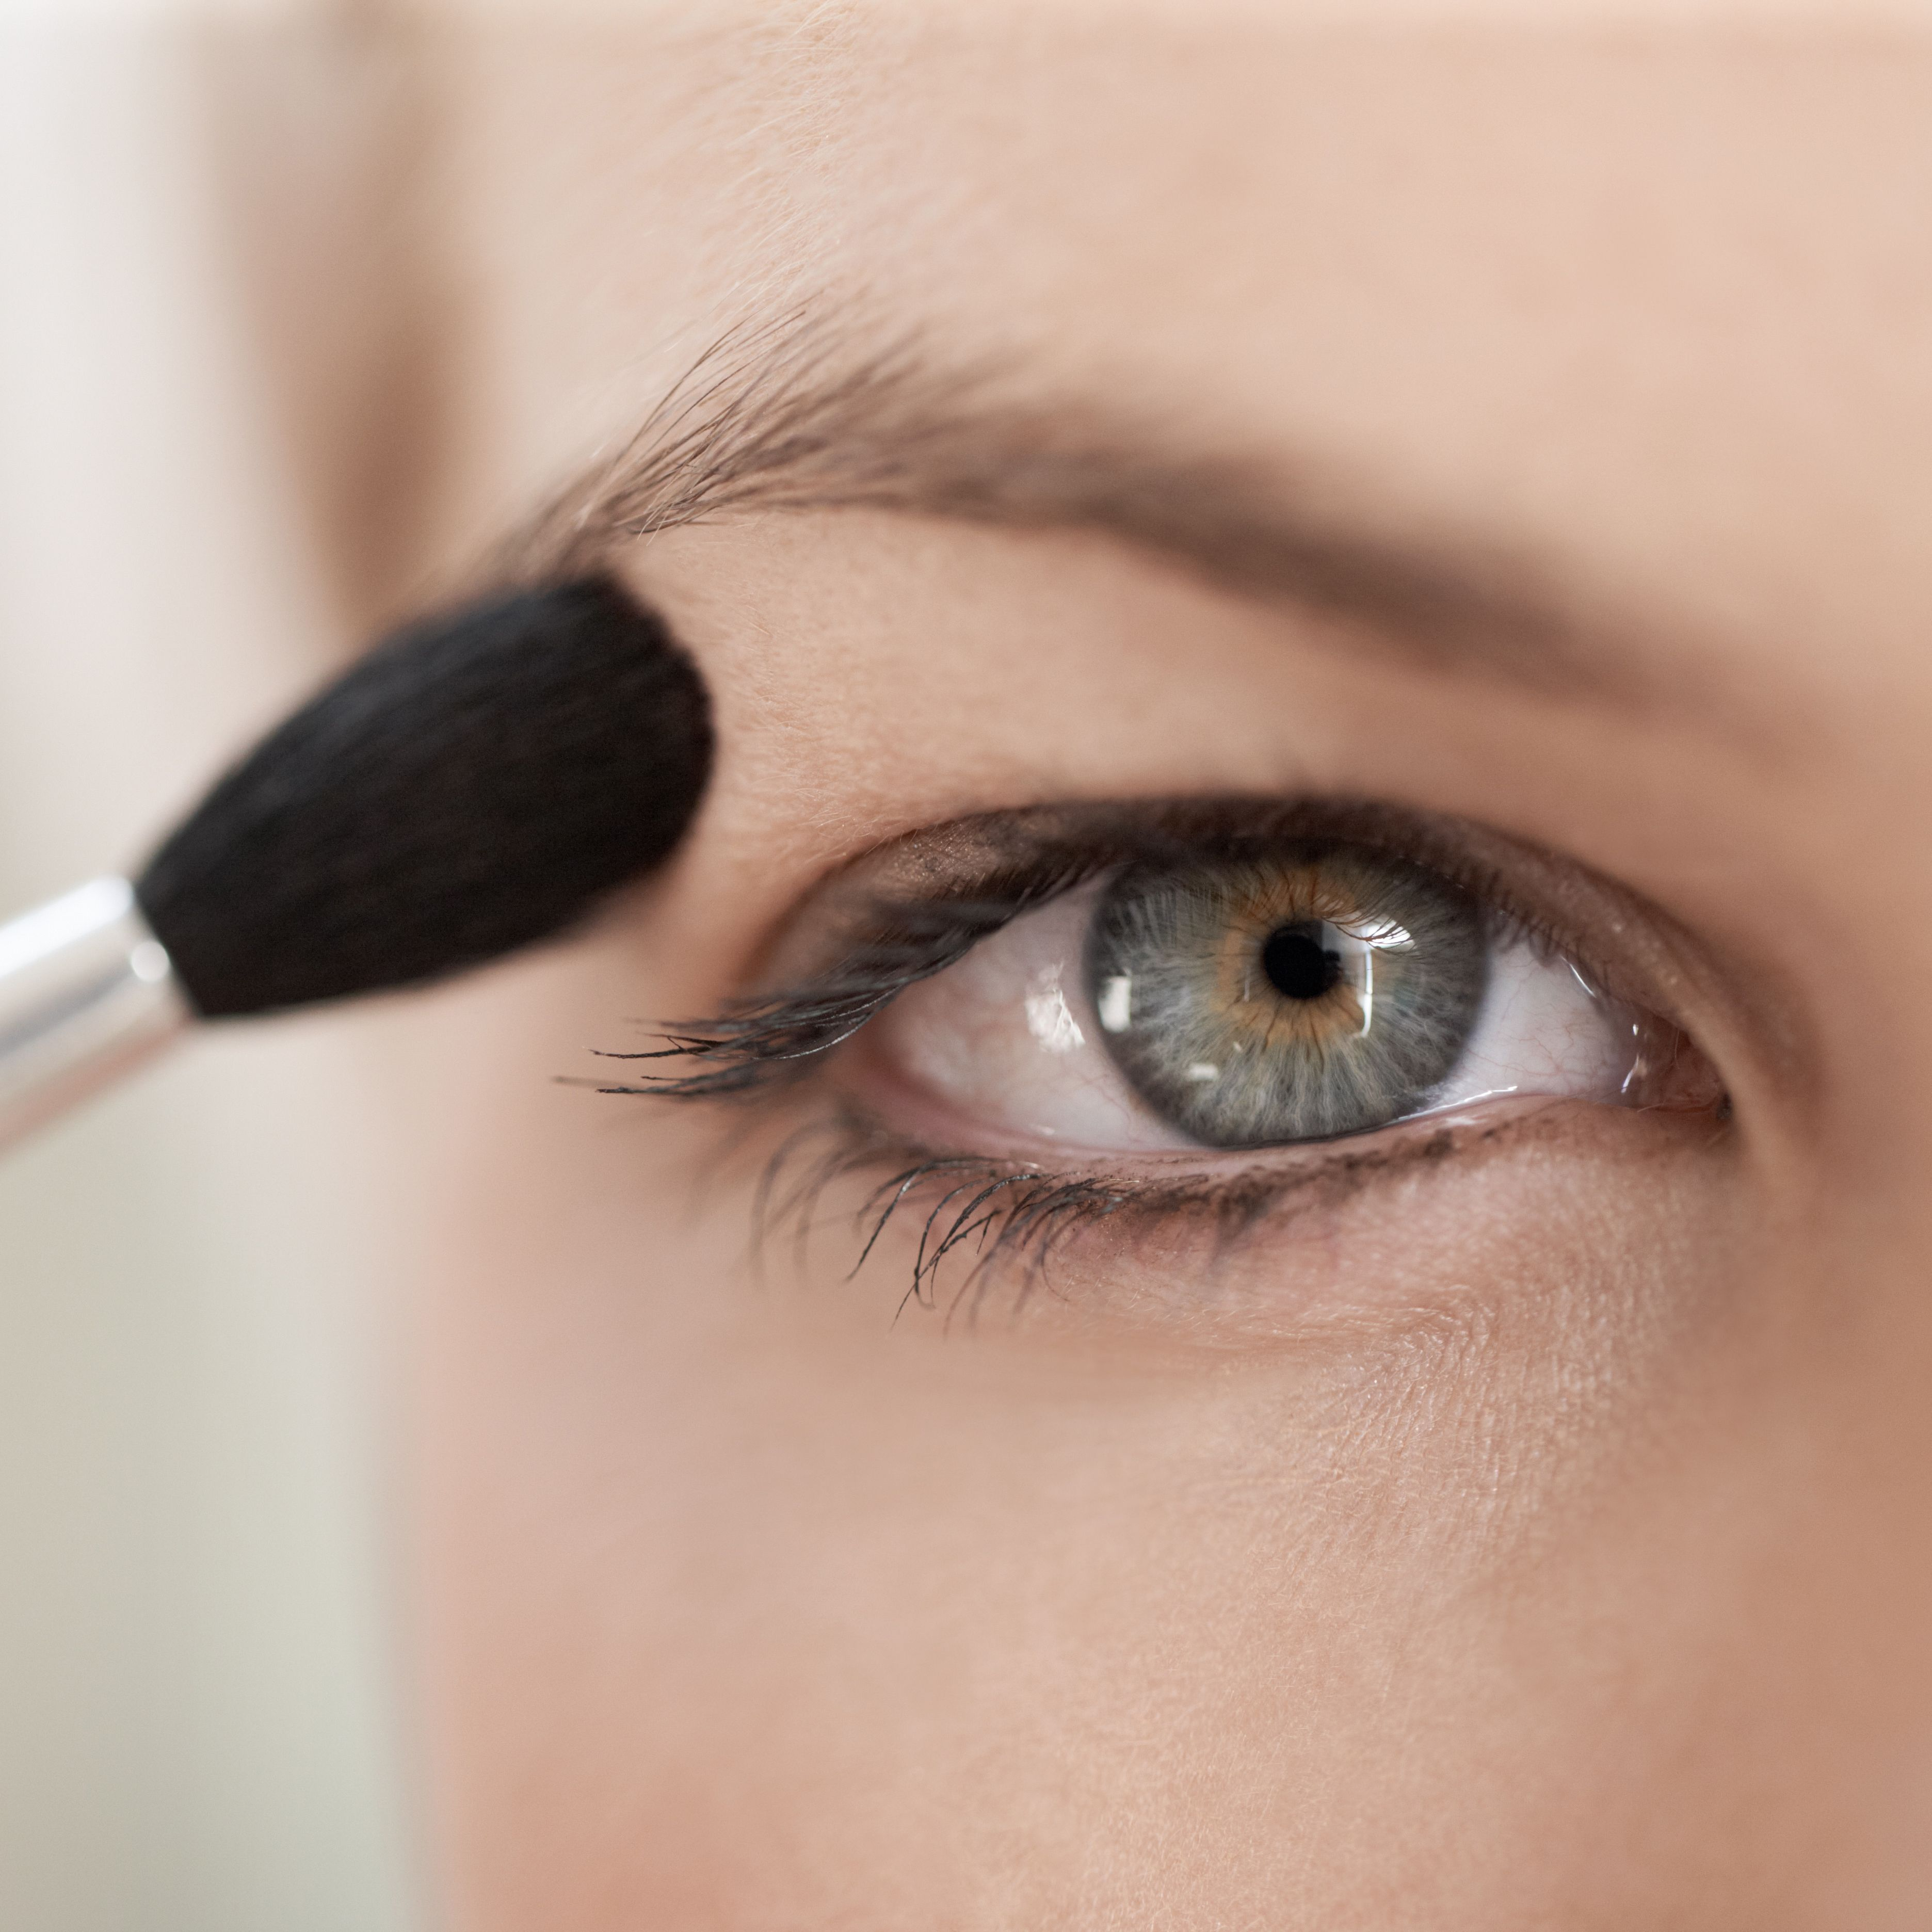 Makeup Tricks For Hooded Eyes Hooded Eyes Makeup Tips And Tricks